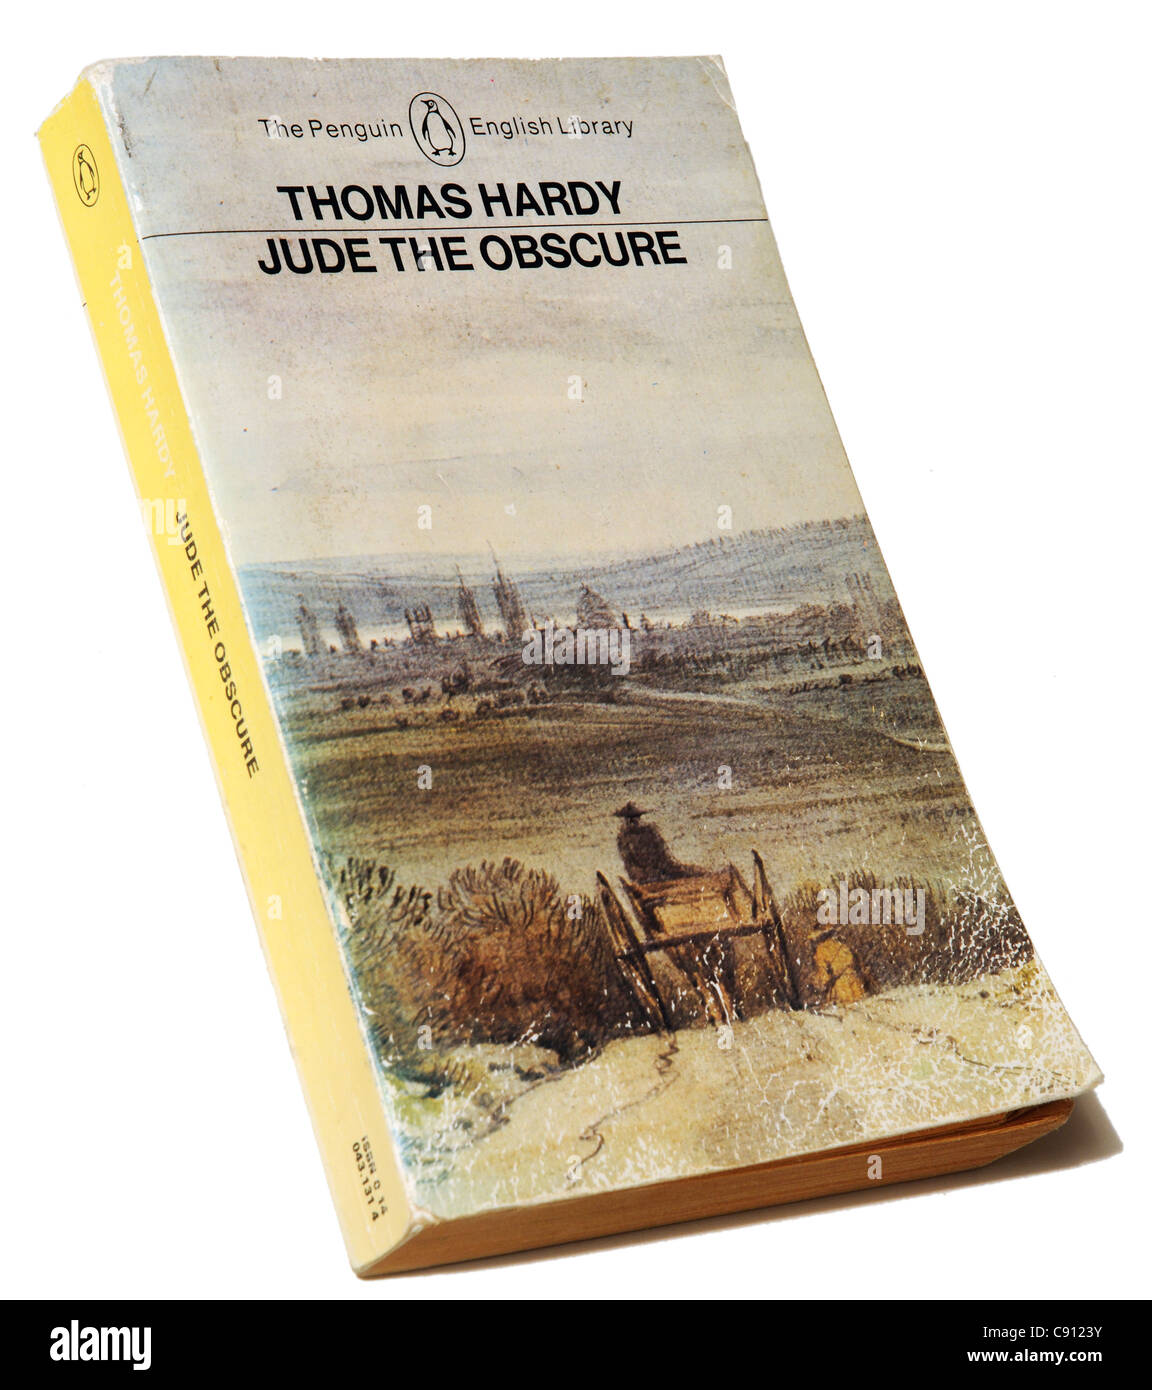 Jude The Obscure by Thomas Hardy - Stock Image